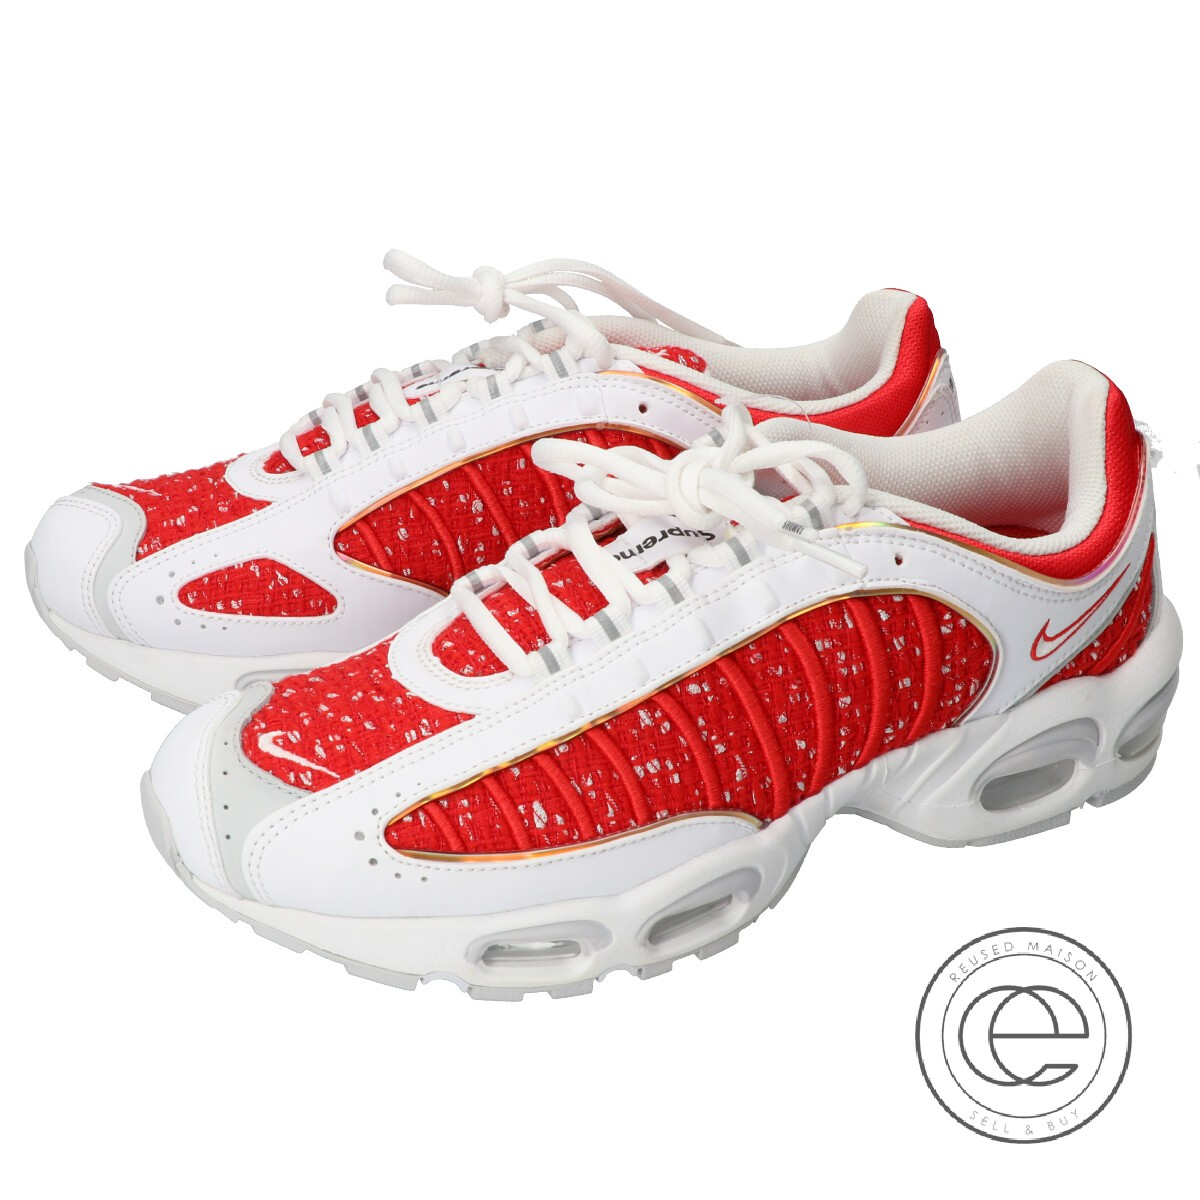 pretty nice 1f999 3d1ee Supreme シュプリーム X NIKE Nike NIKE AIR MAX TAILWIND IV/S Air Max tale wind 4  sneakers / shoes 29cm WHITE UNIVERSITY RED men